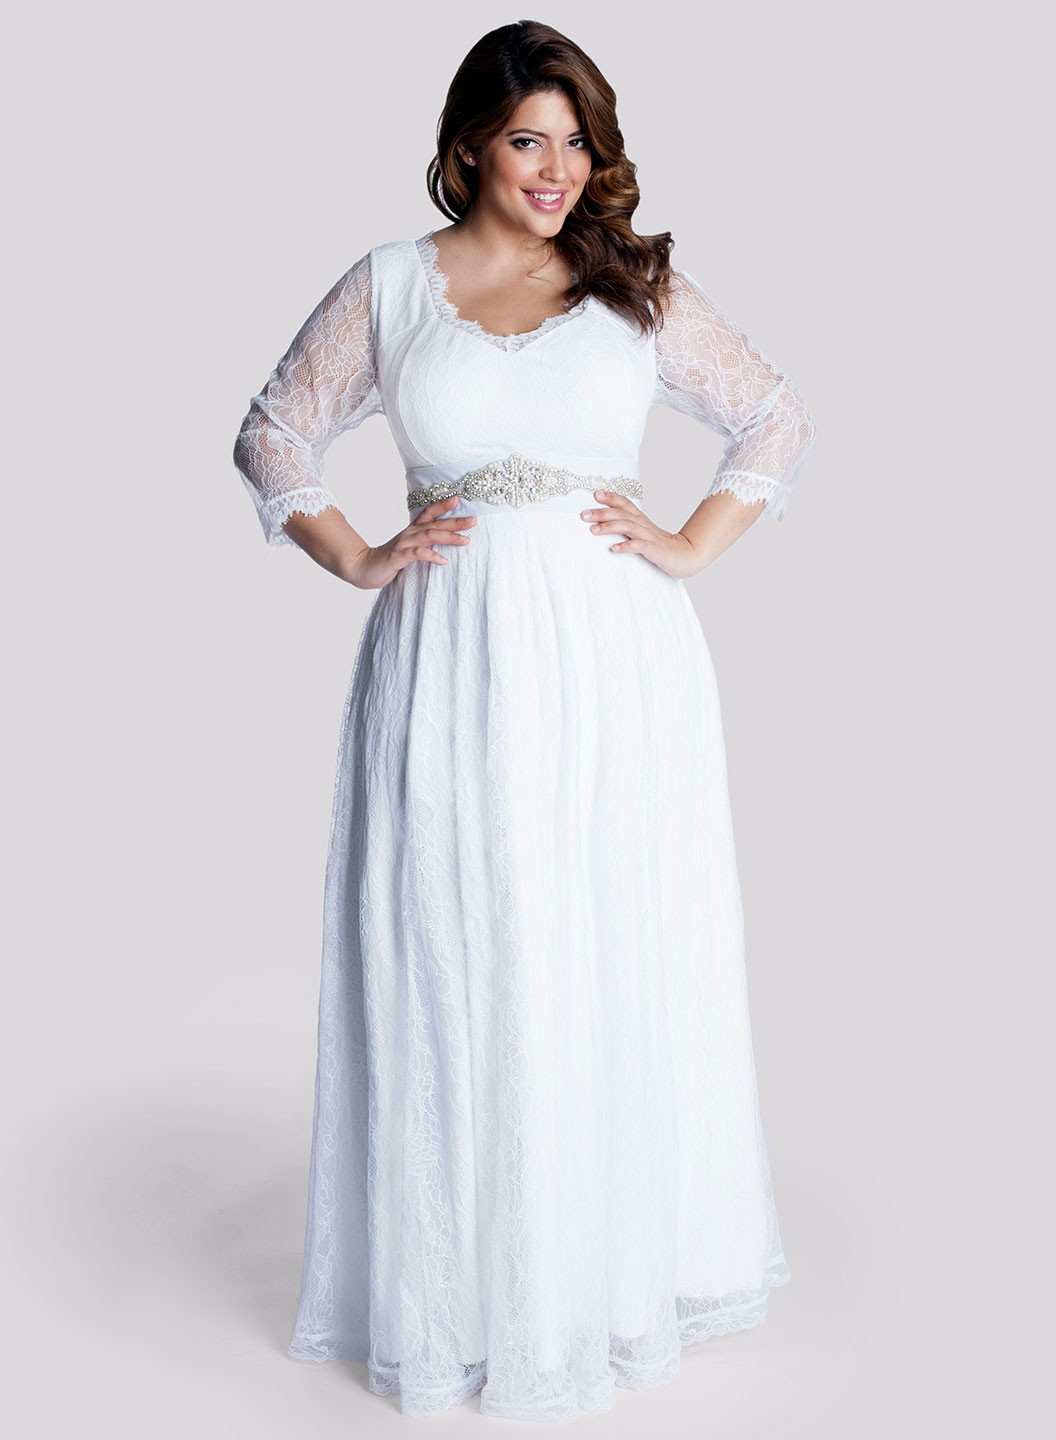 Plus size dresses for wedding guest - Style Jeans